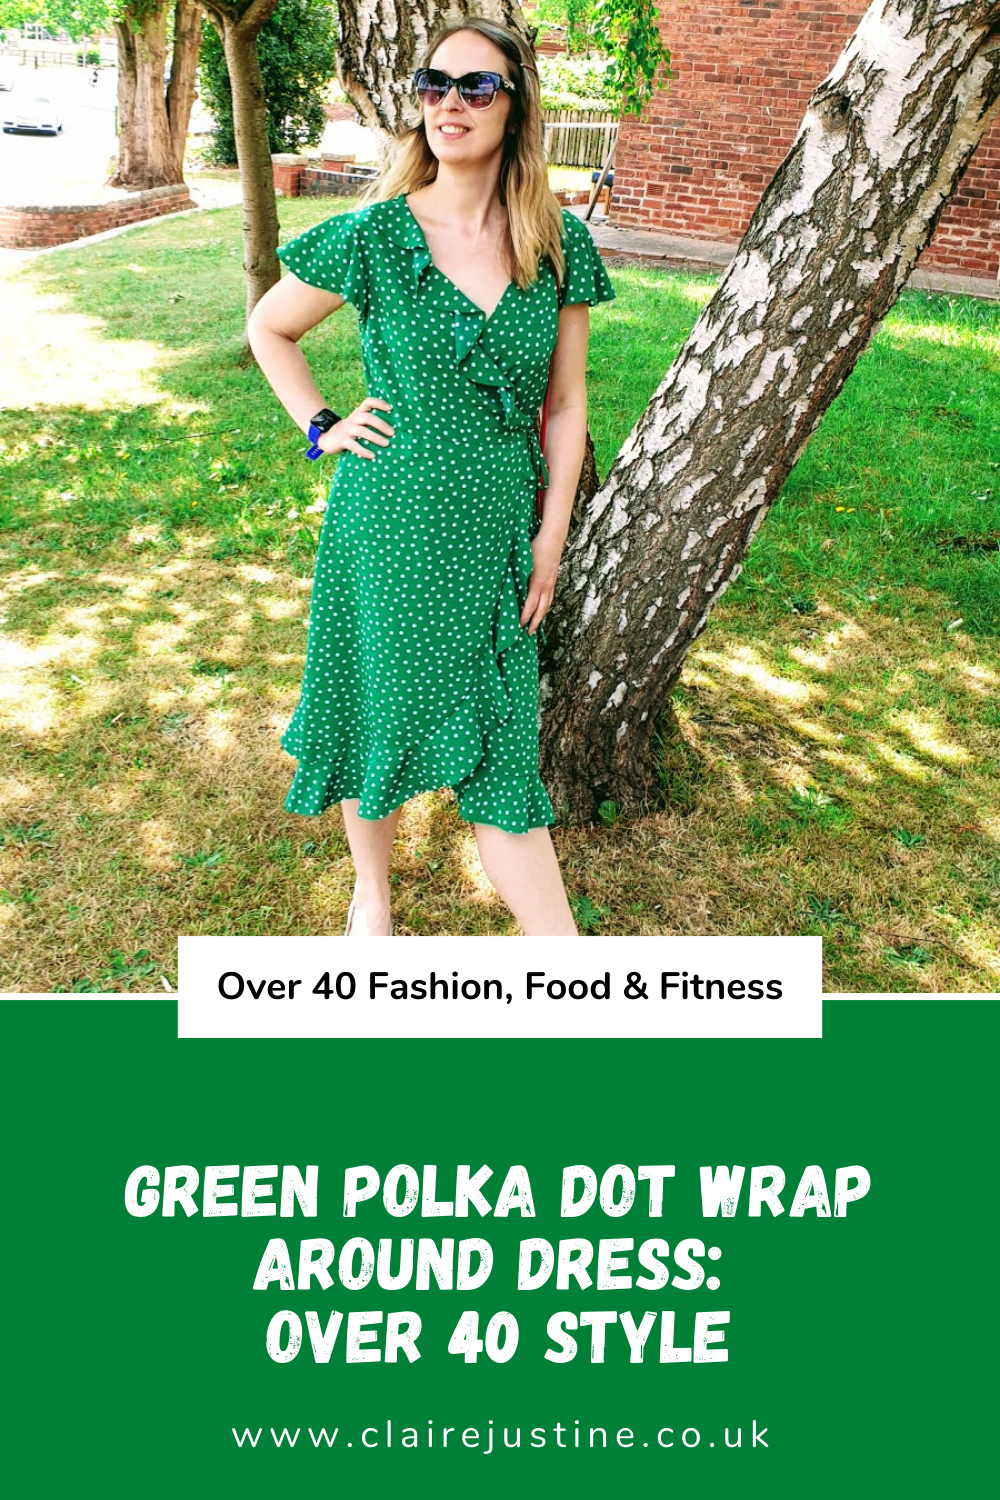 Green Polka Dot Wrap Around Dress: Over 40 Style.